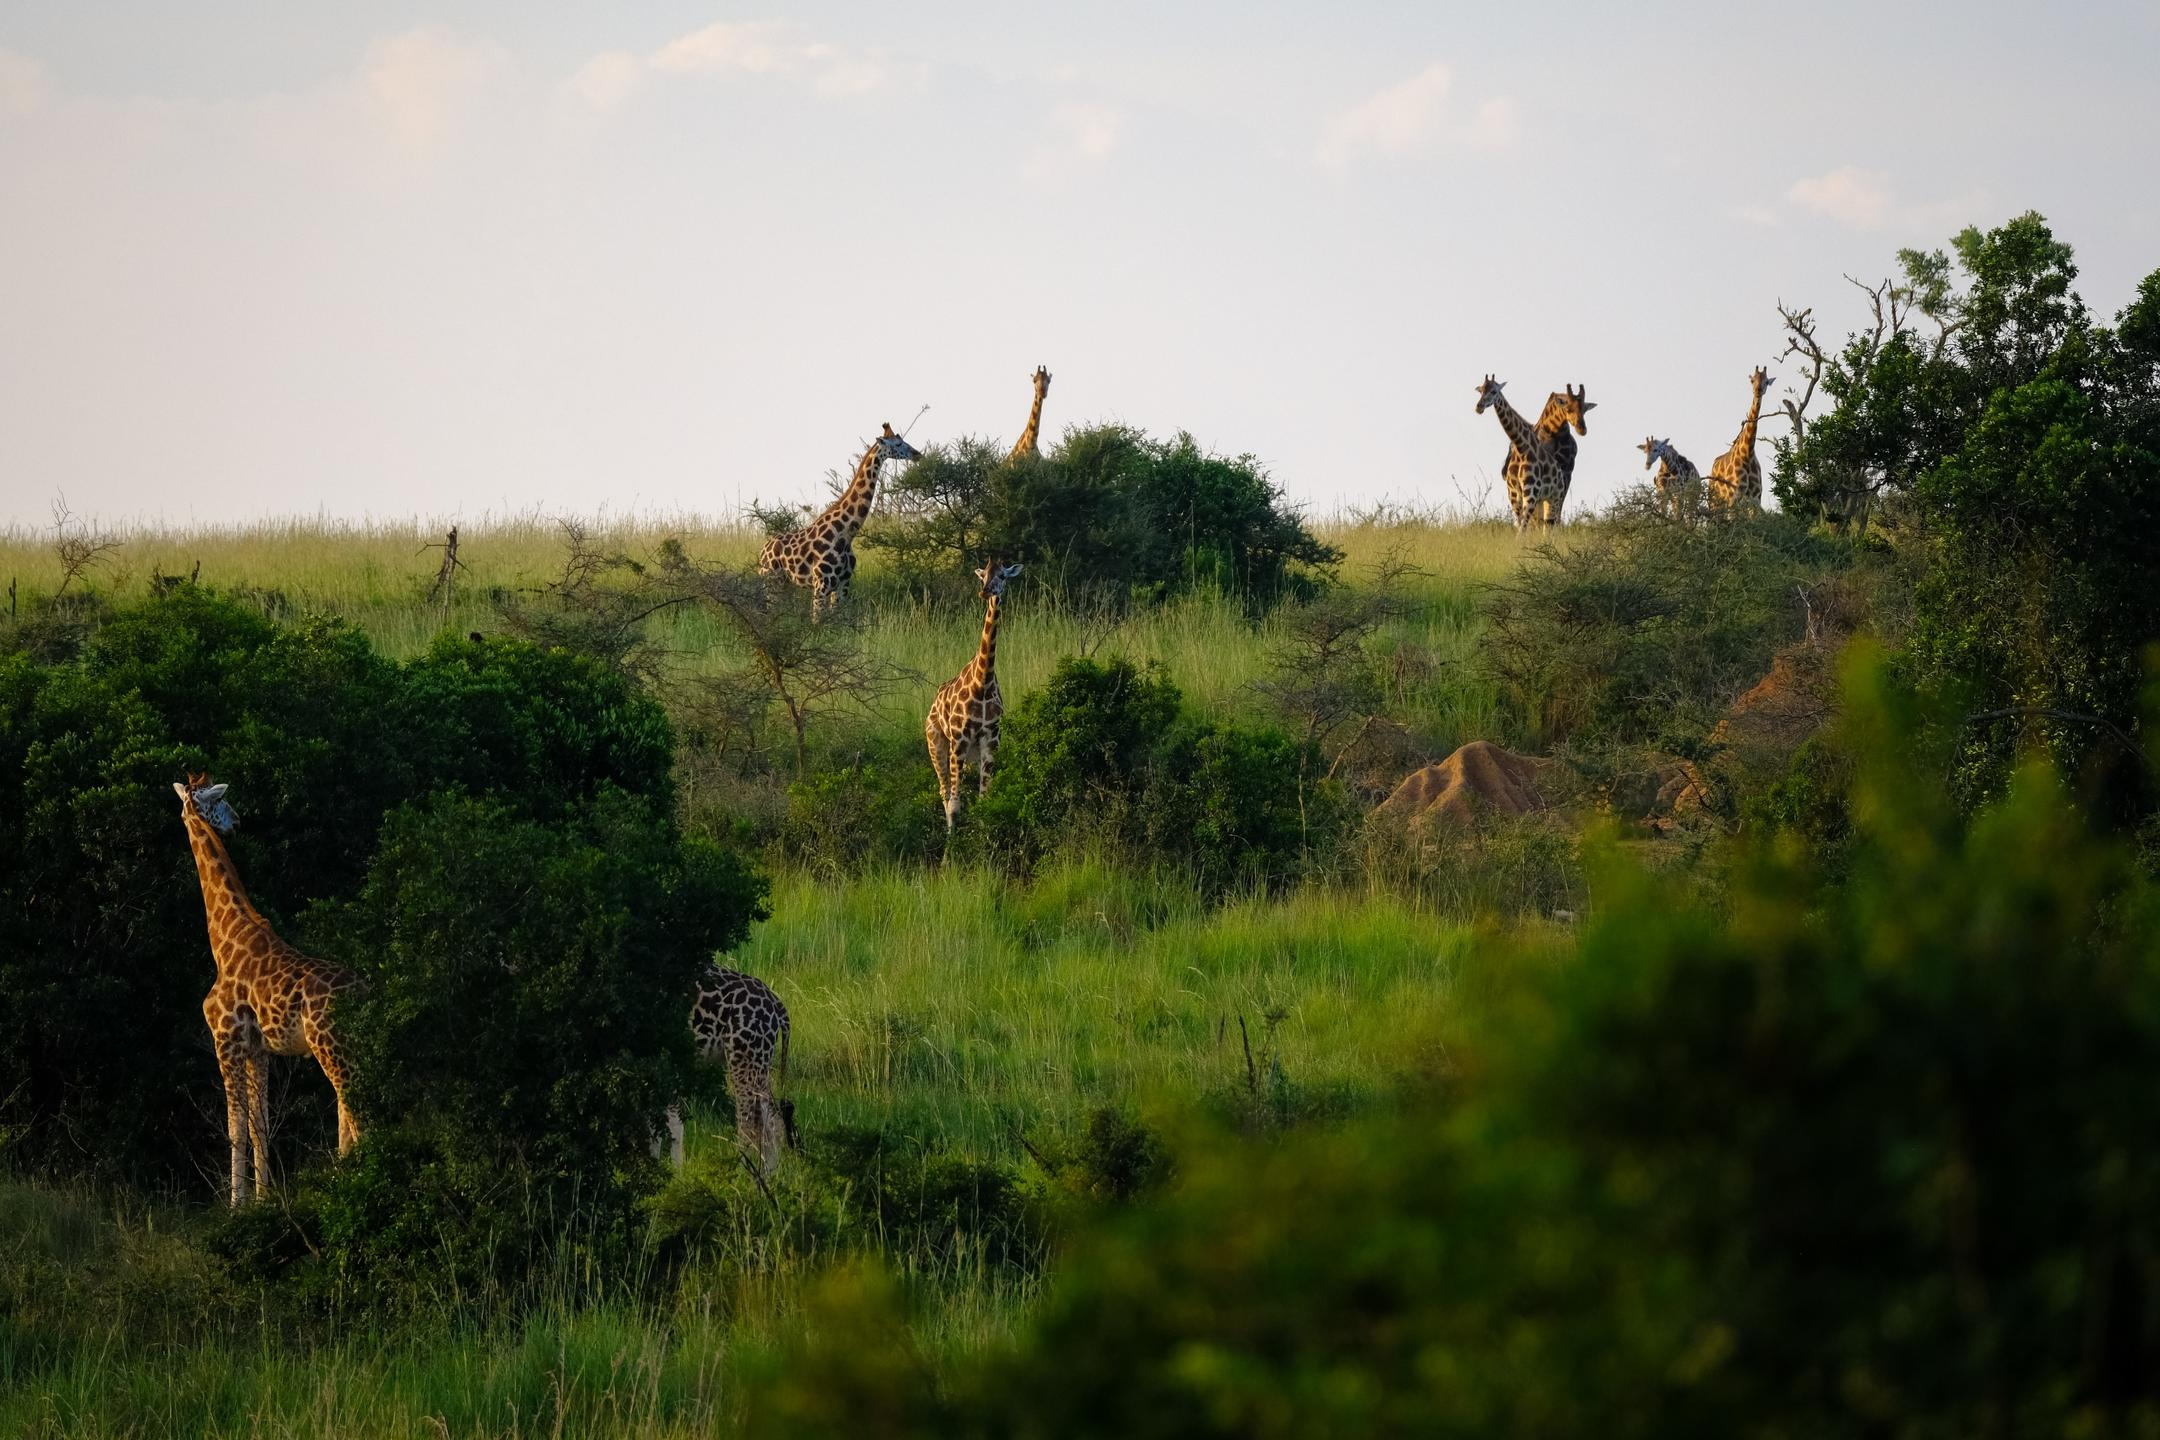 Lots of giraffes with trees